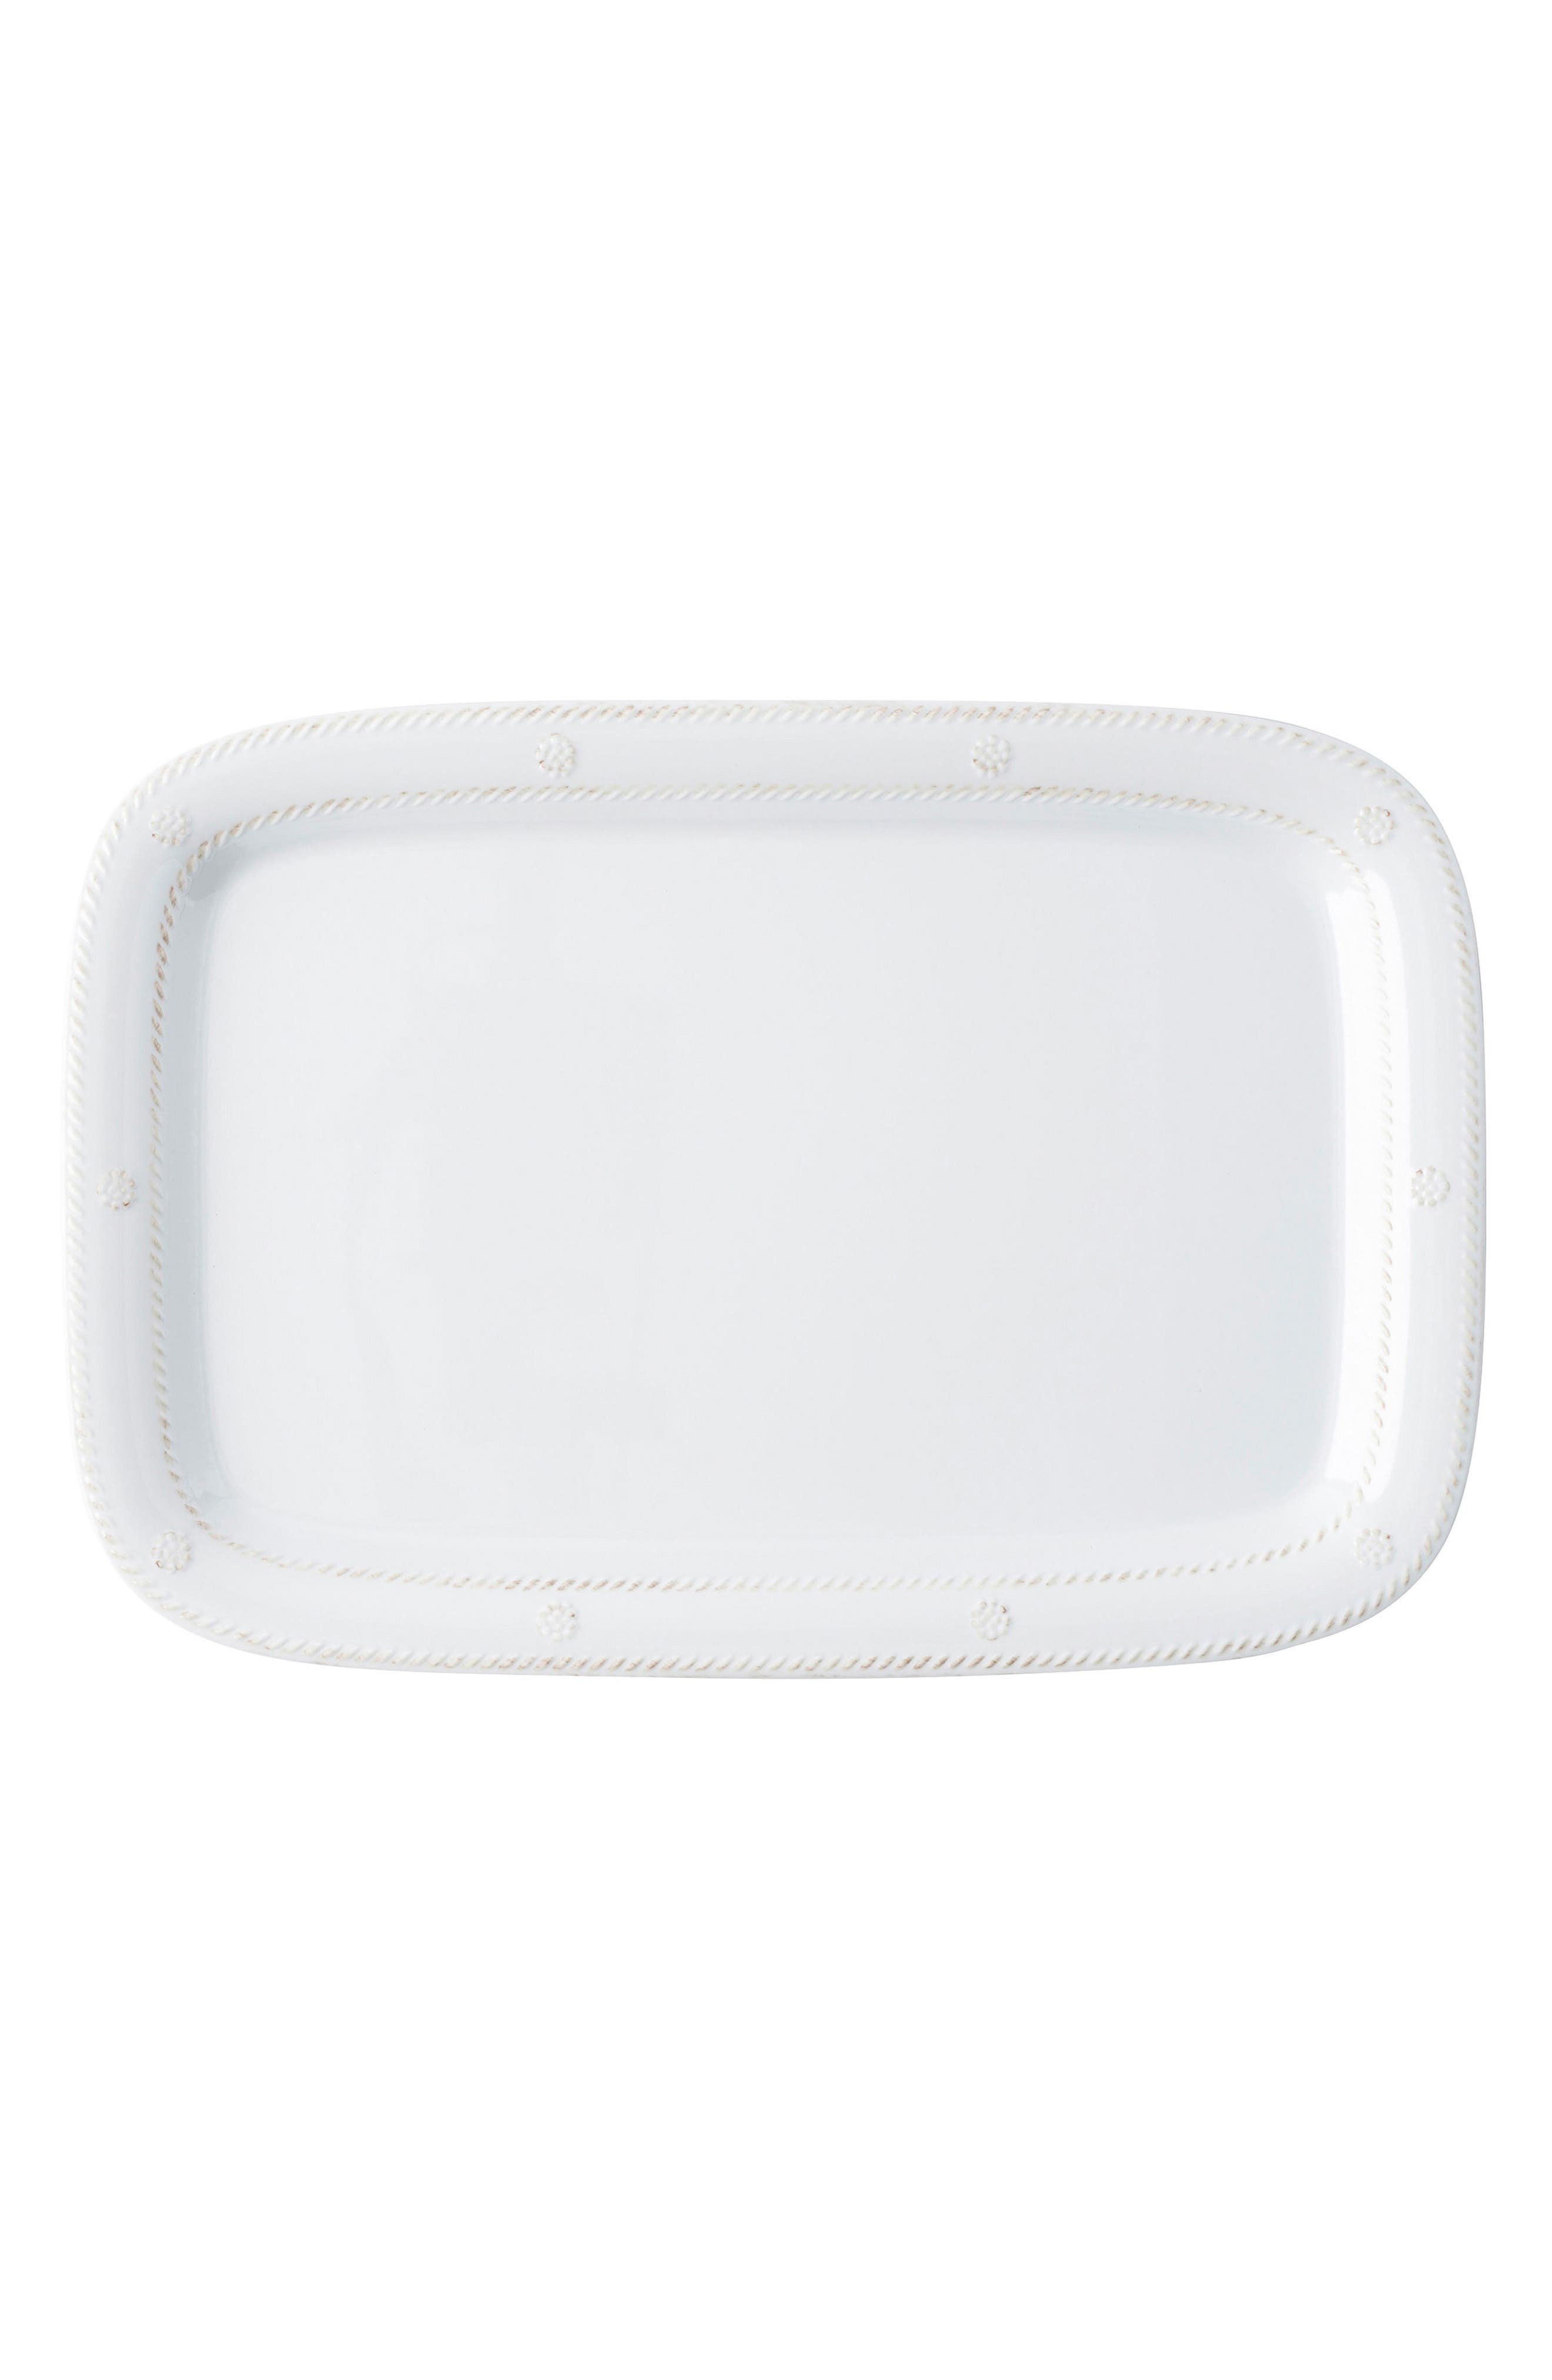 Berry & Thread Whitewash Melamine Serving Tray,                         Main,                         color, 100